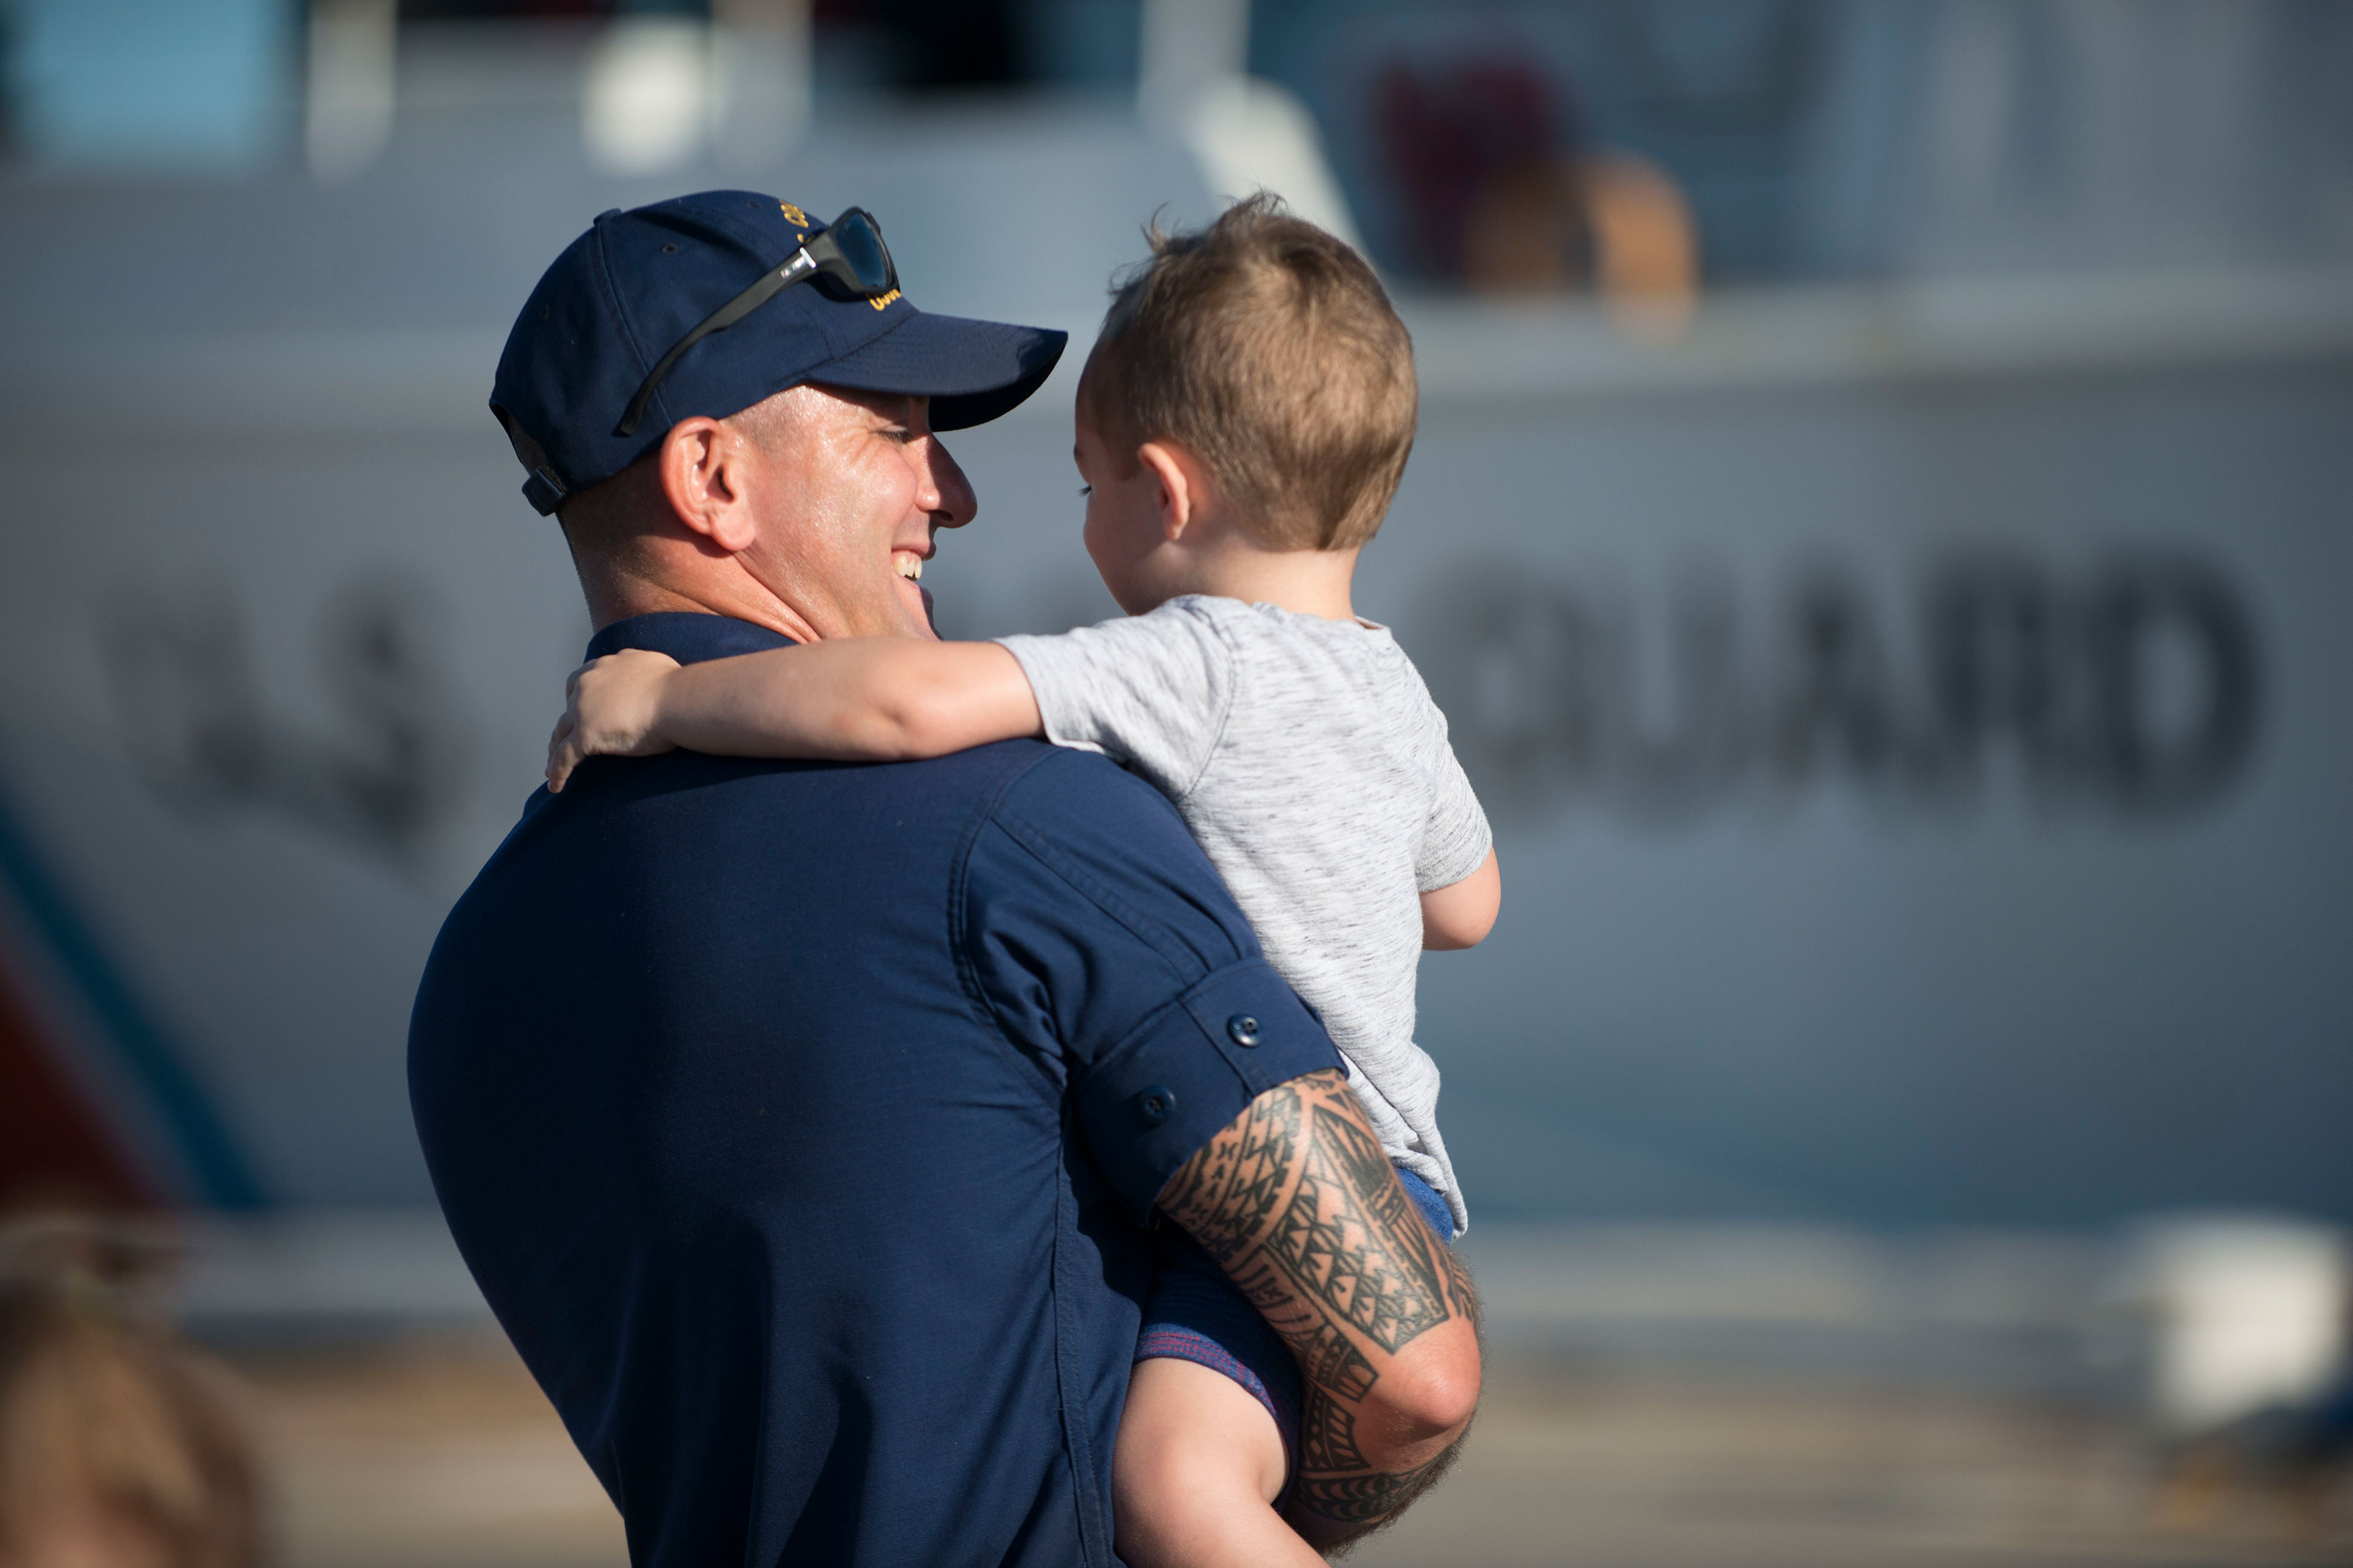 A Coast Guard Cutter Valiant crewmember hugs his child Friday, Sept. 29, 2017, at Naval Station Mayport, Florida. The Valiant crew returned to homeport after a 60-day multi-mission patrol in the Caribbean. (U.S. Coast Guard/Ryan Dickinson)